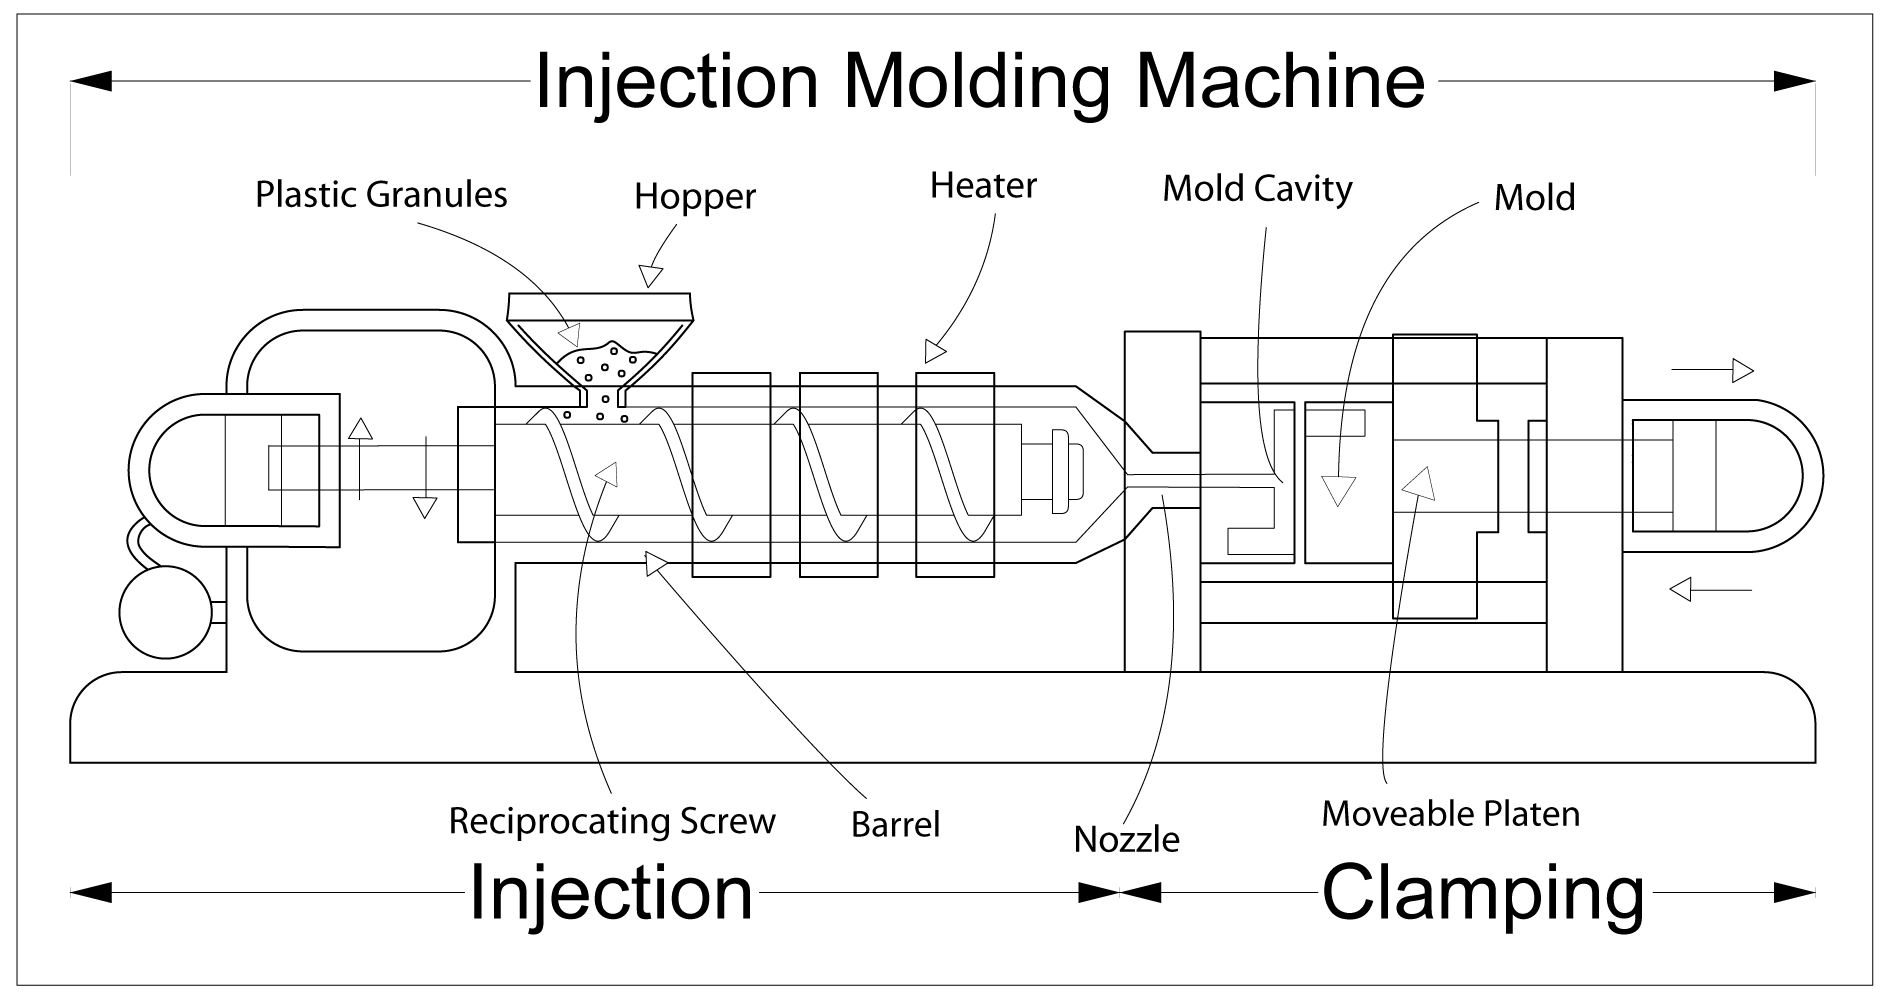 hight resolution of injection moulding wikipedia injection molding machine general function and parts diagram